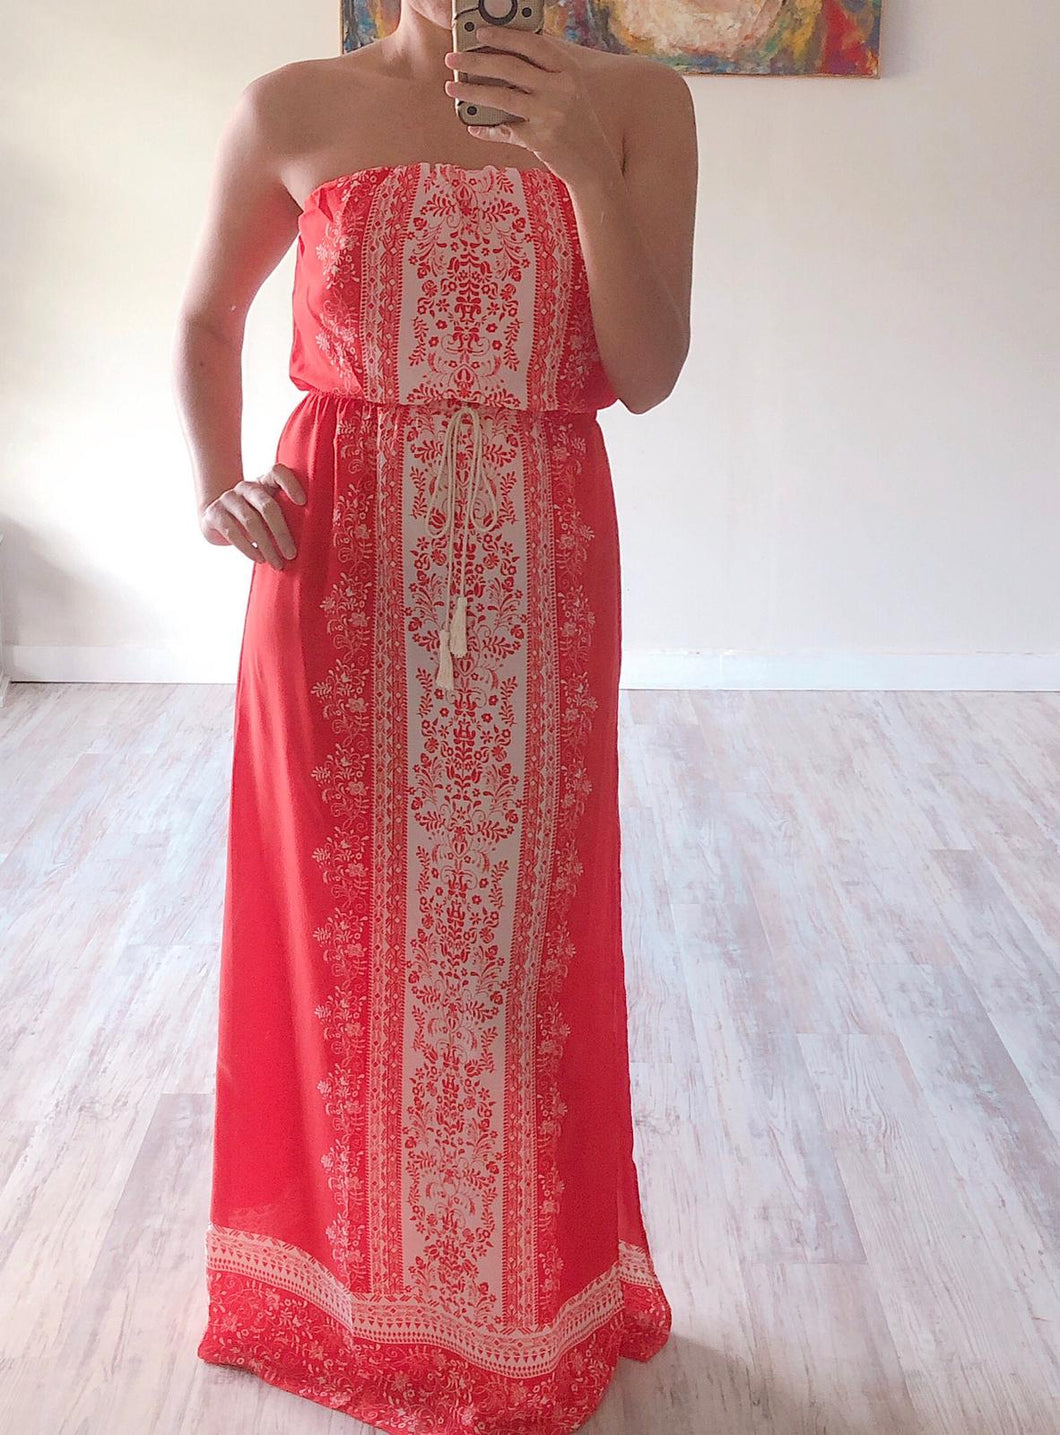 Red Strapless Maxi Dress - Cocoa Couture Miami Boutique